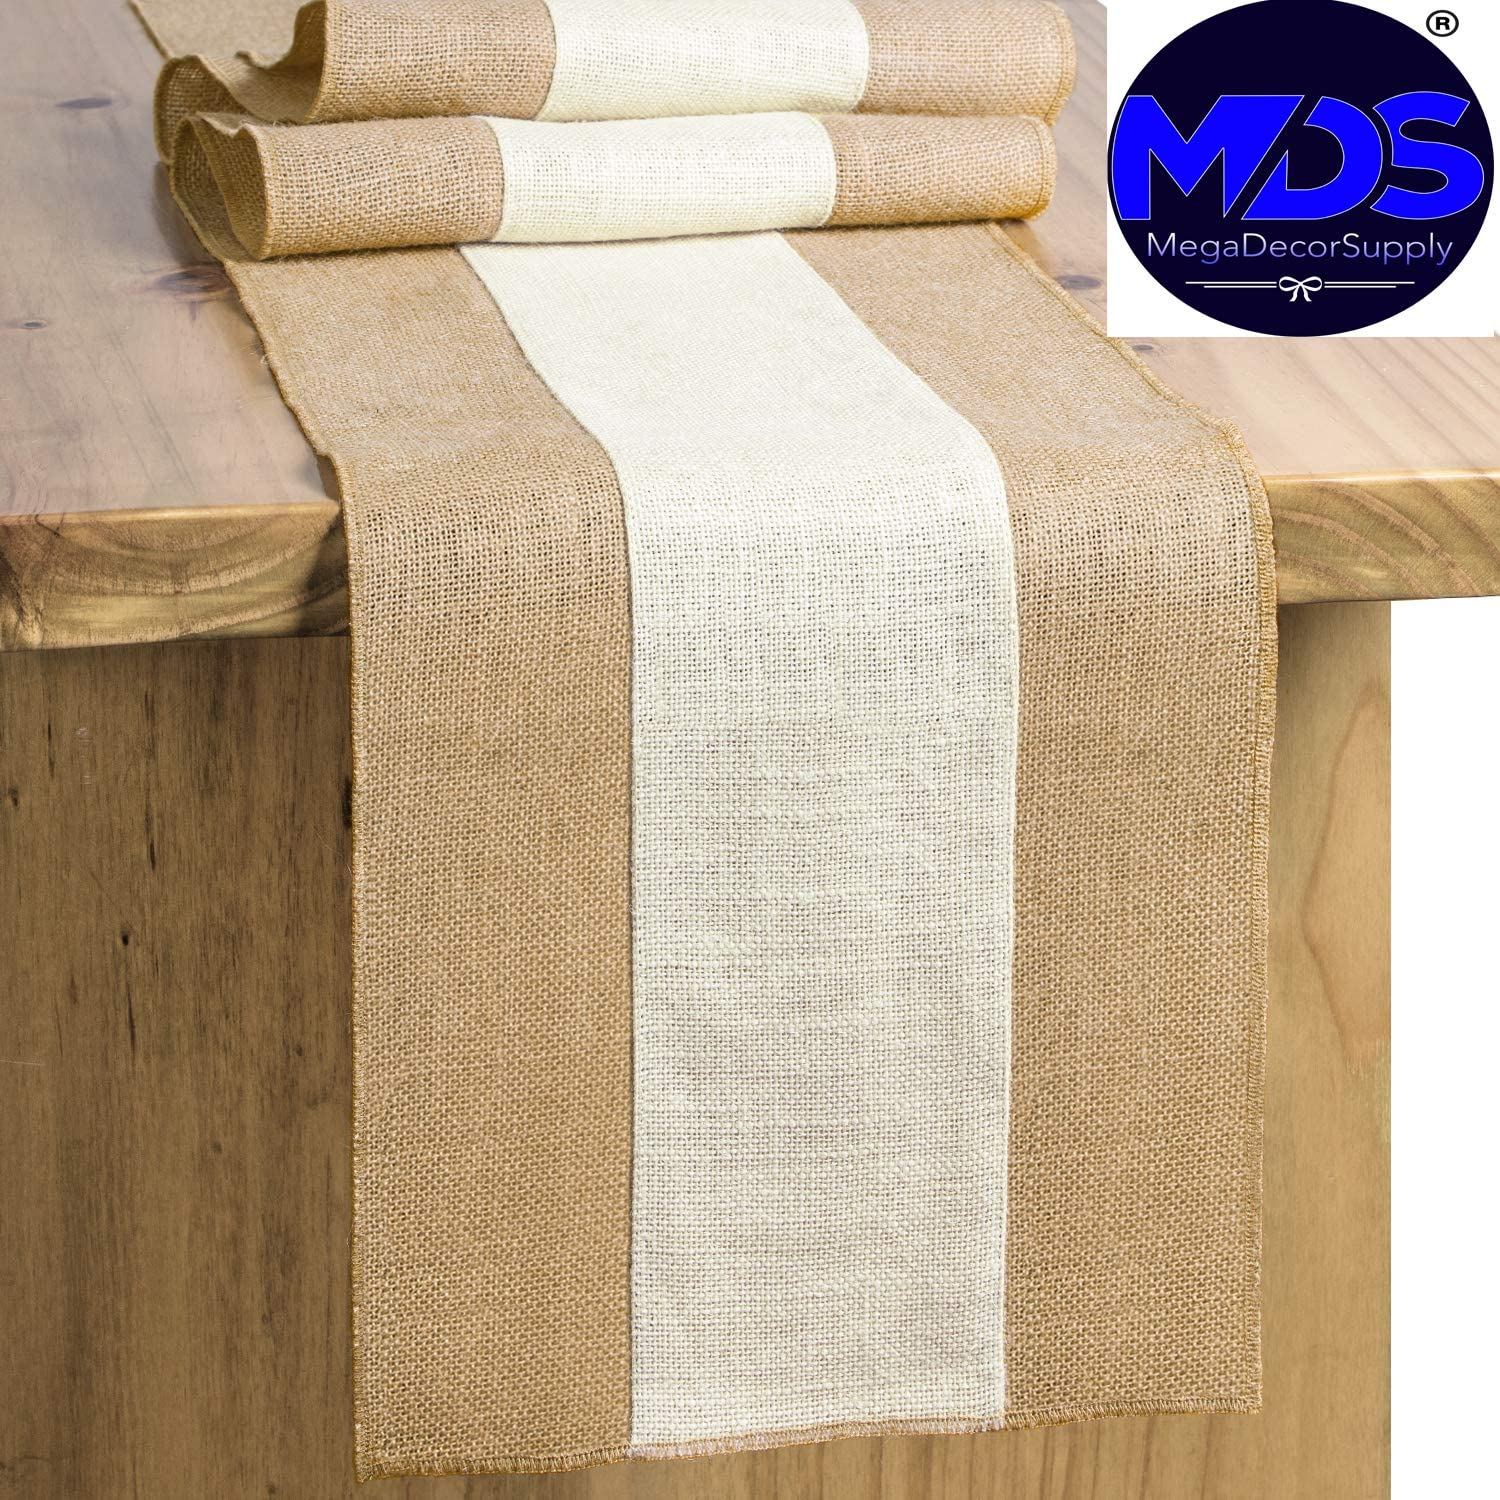 mds Pack of 10 Wedding 12 x 108 inch Burlap Table Runner Natural Jute Country Vintage for Wedding Banquet Decoration – Natural Jute Burlap: Home & Kitchen